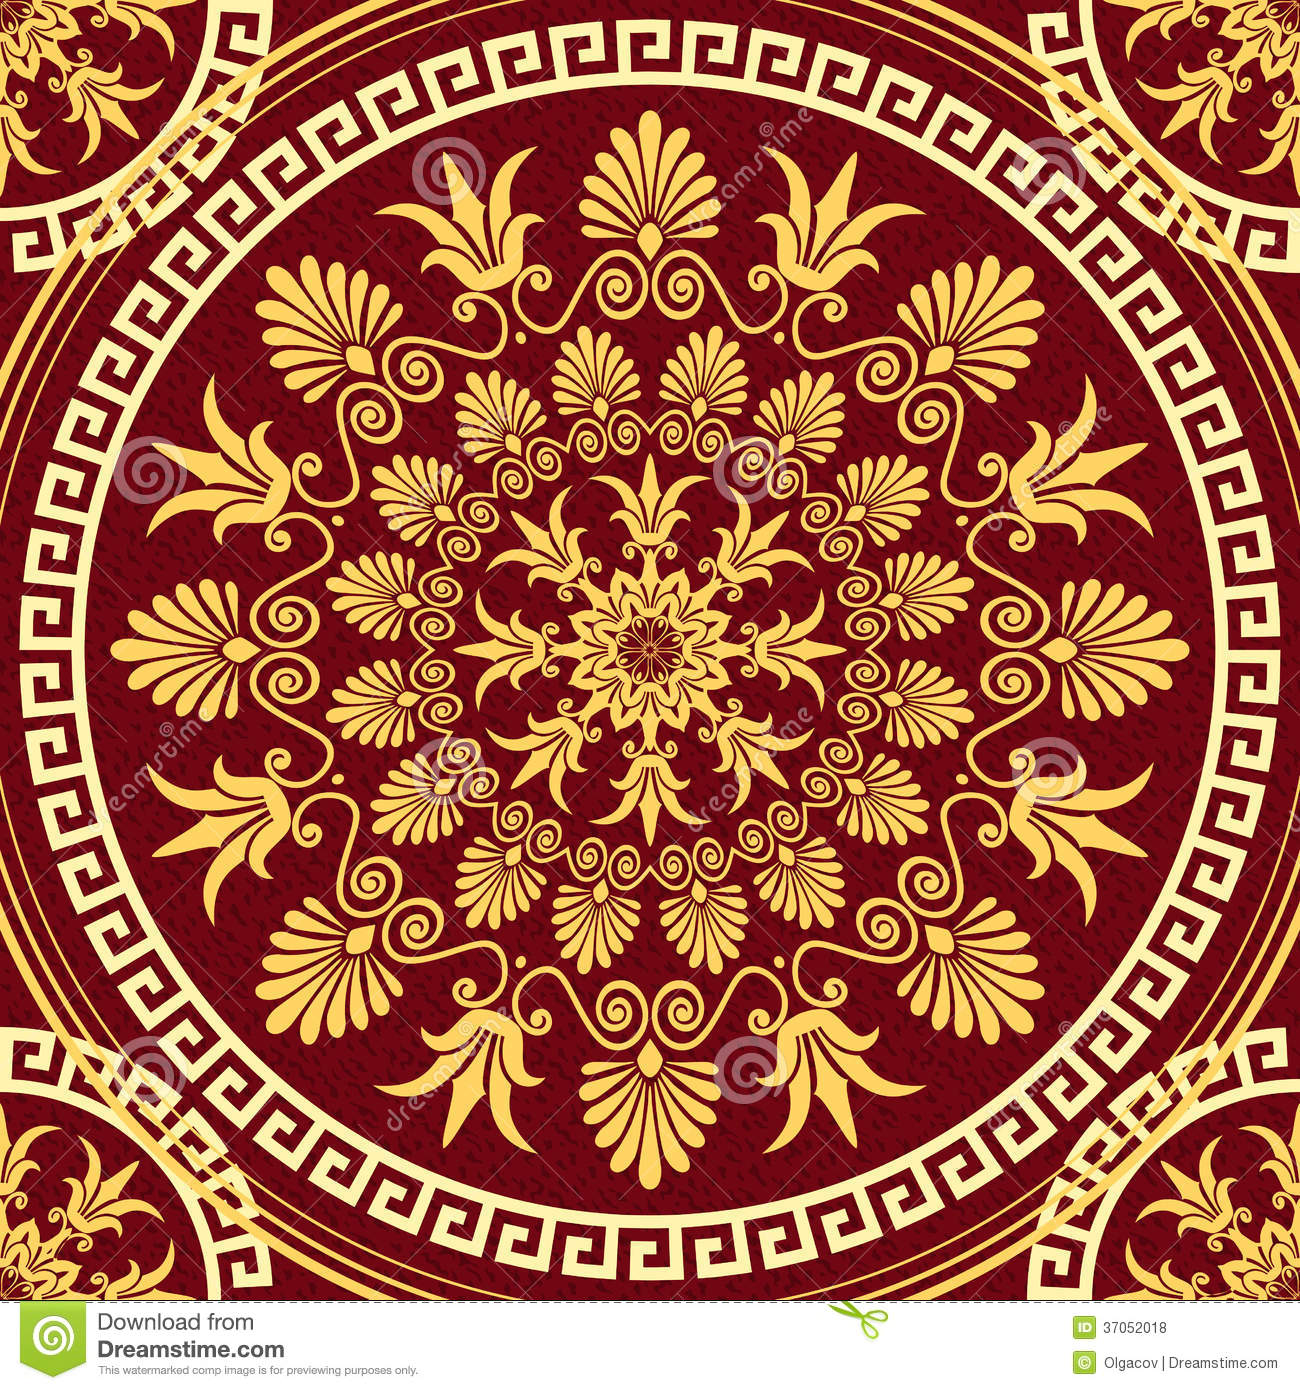 Download Vector Seamless Elegant Lace Gold Ornament Stock Vector - Illustration of motif, lace: 37052018